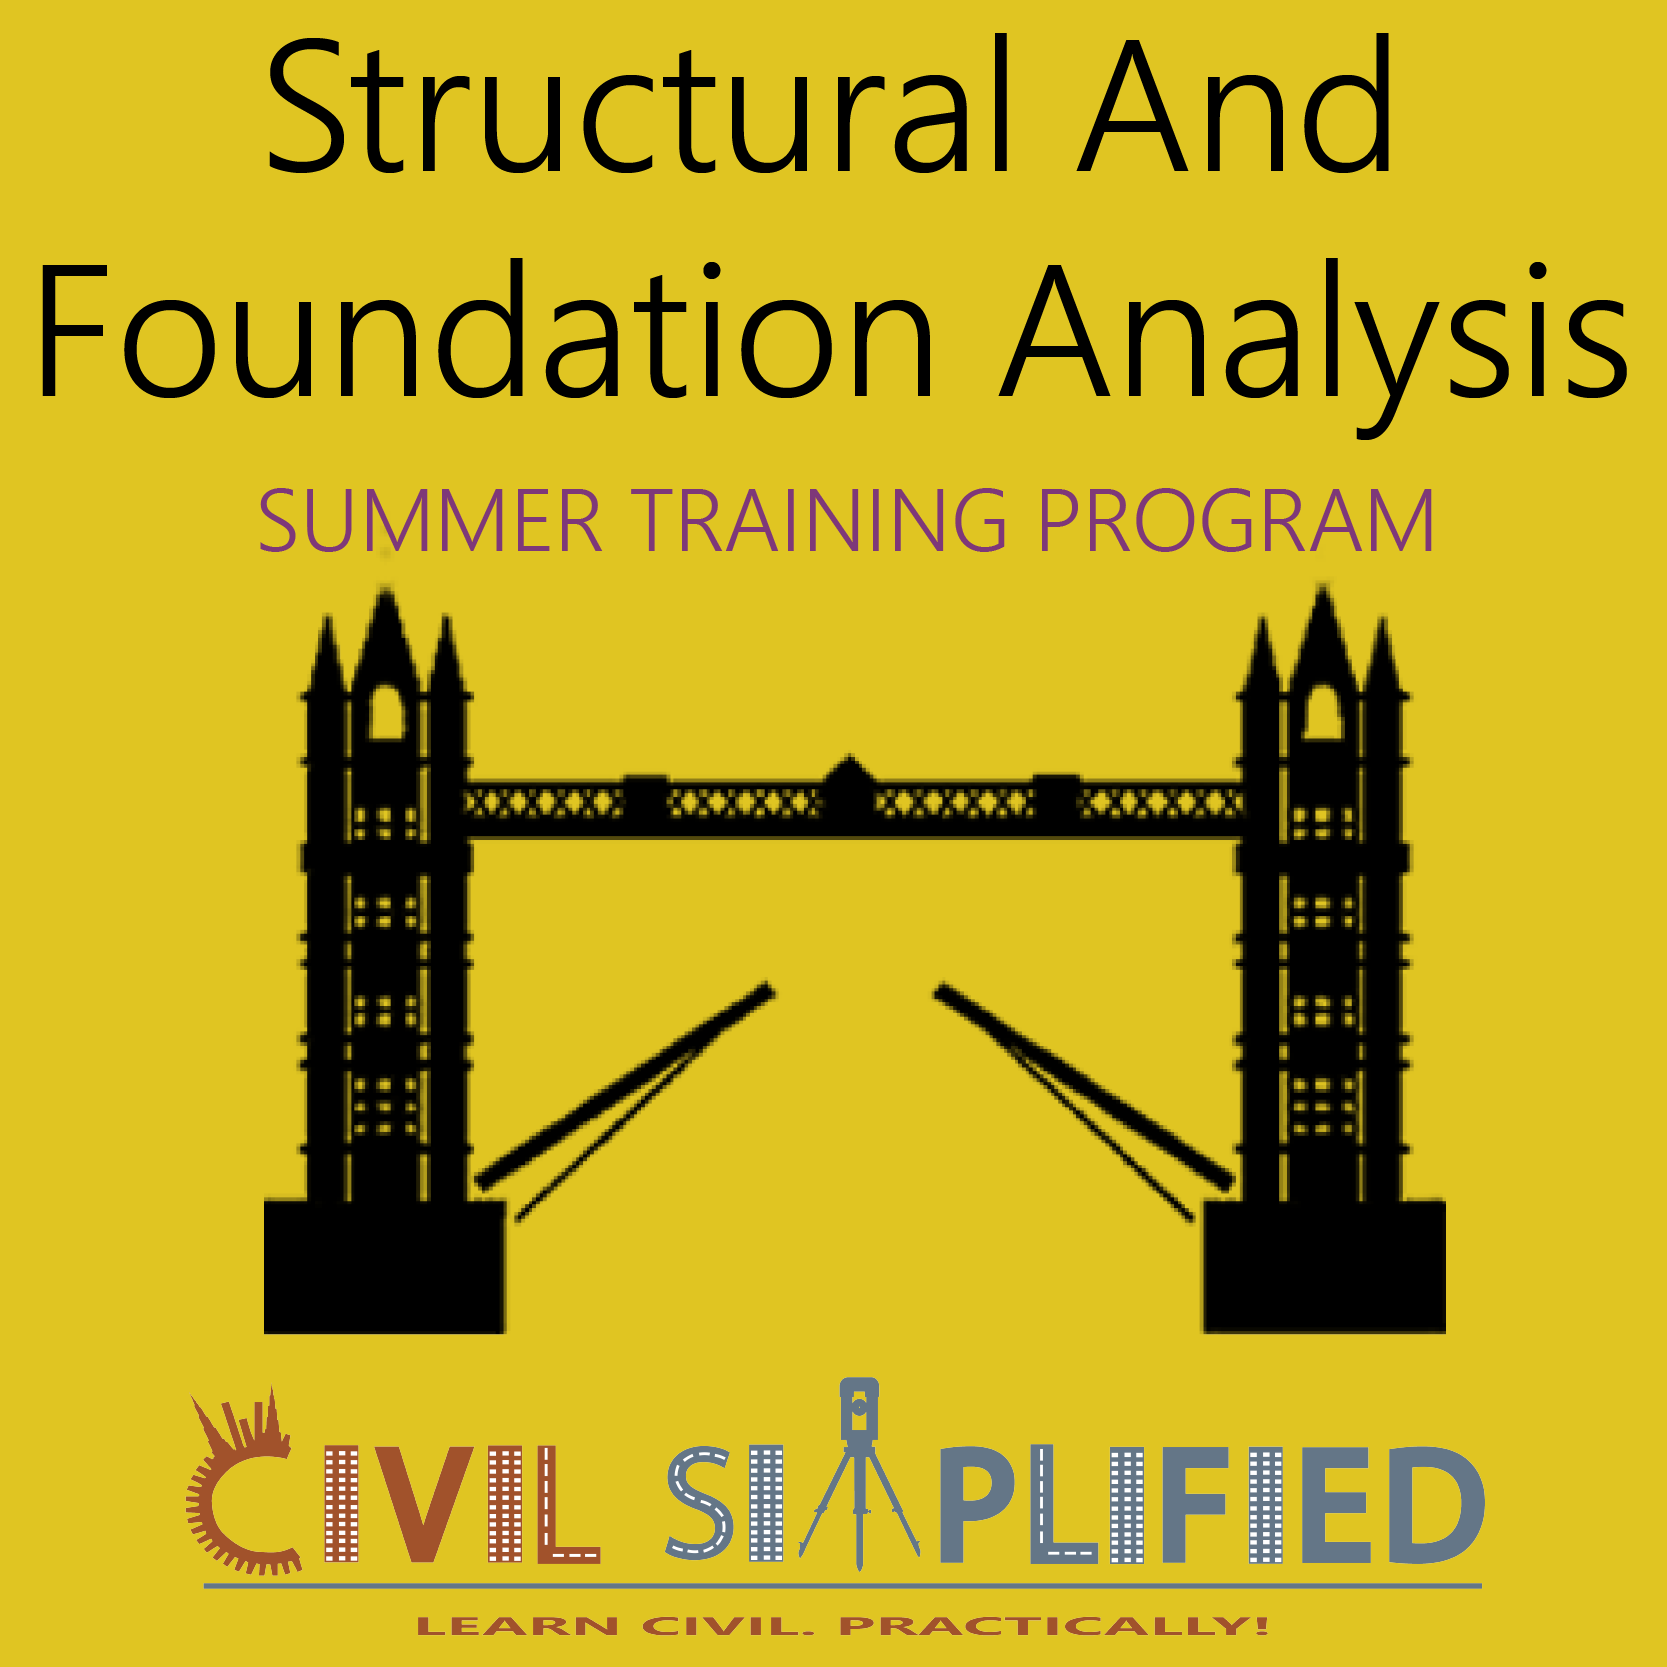 Summer Training Program in Civil Engineering - Structural and Foundation Analysis in Chennai